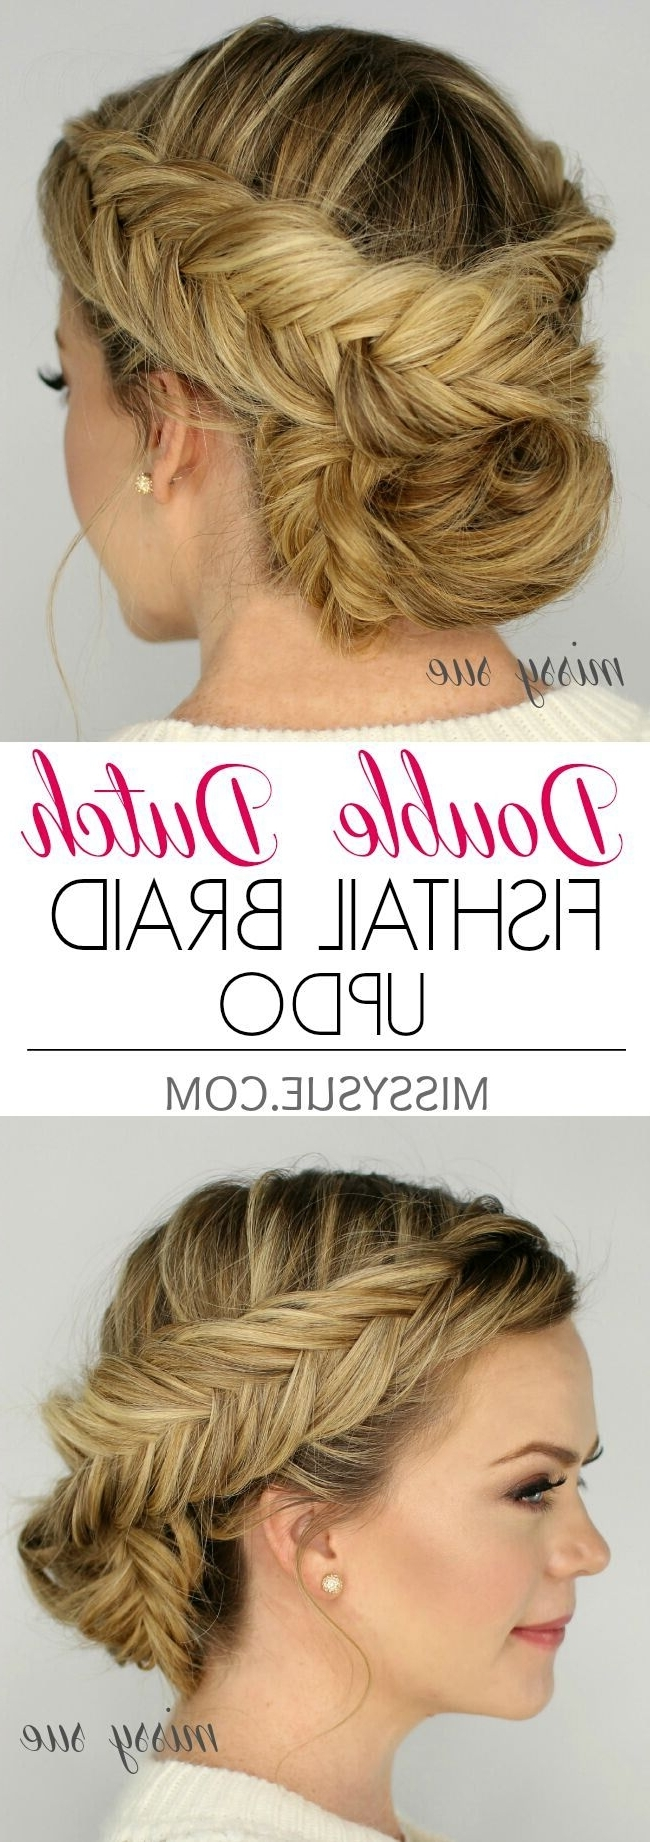 21 All New French Braid Updo Hairstyles – Popular Haircuts Inside Famous Unique Braided Up Do Hairstyles (View 15 of 15)